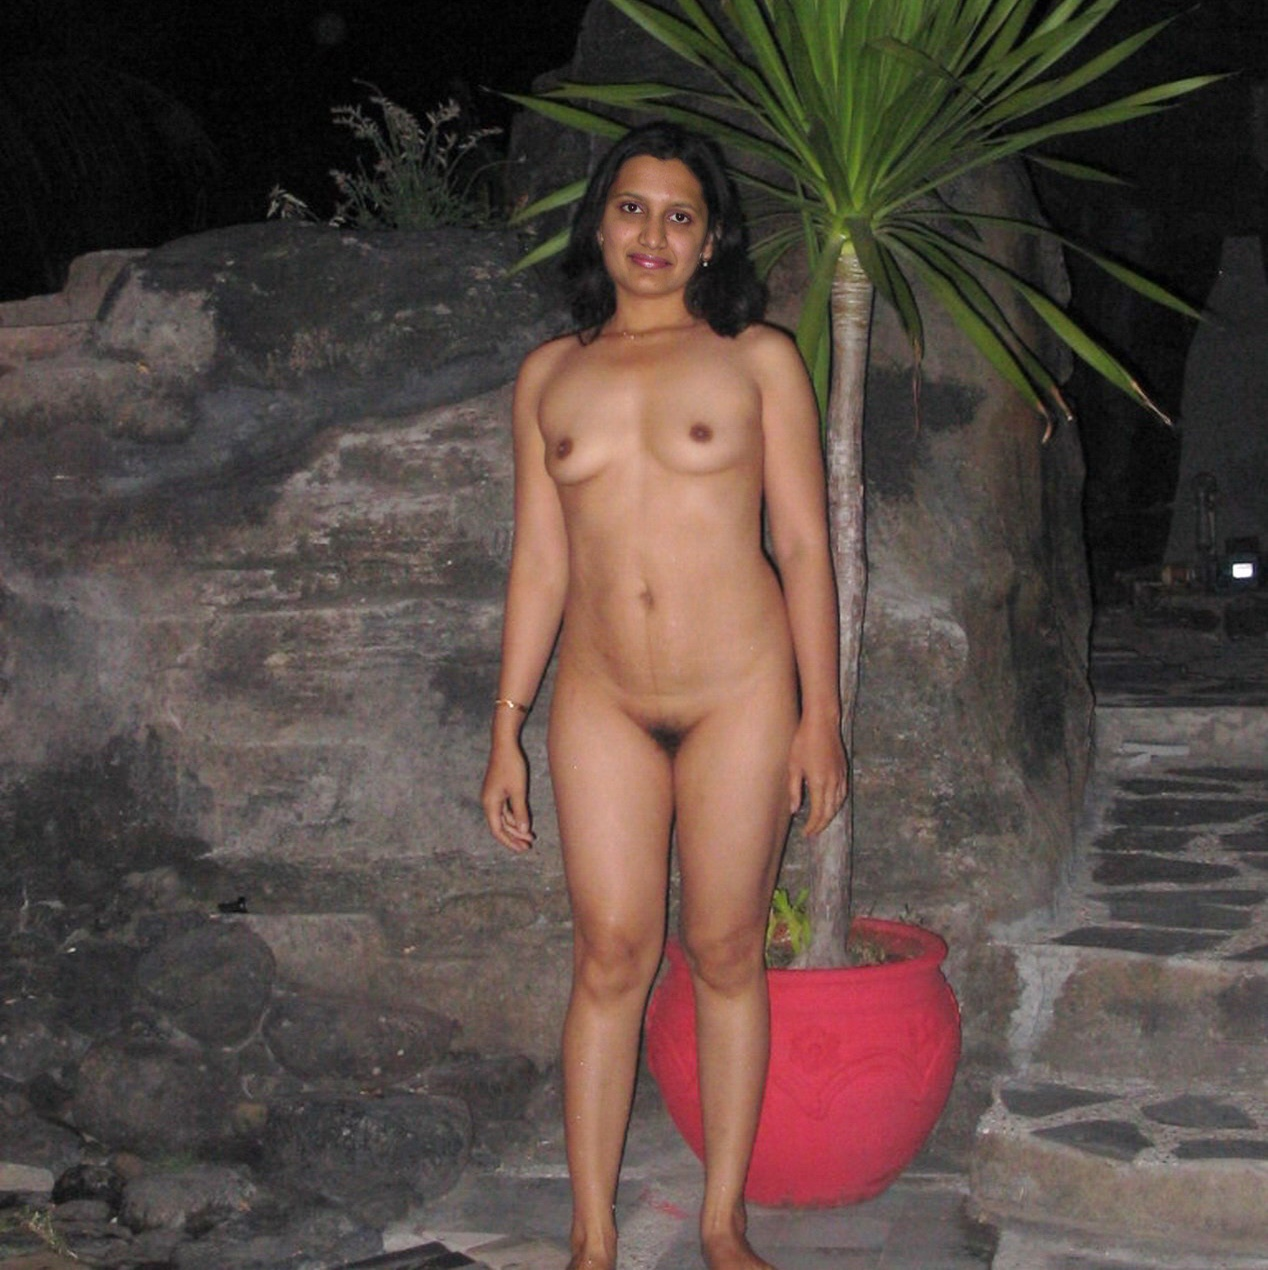 sima viswas naked photo